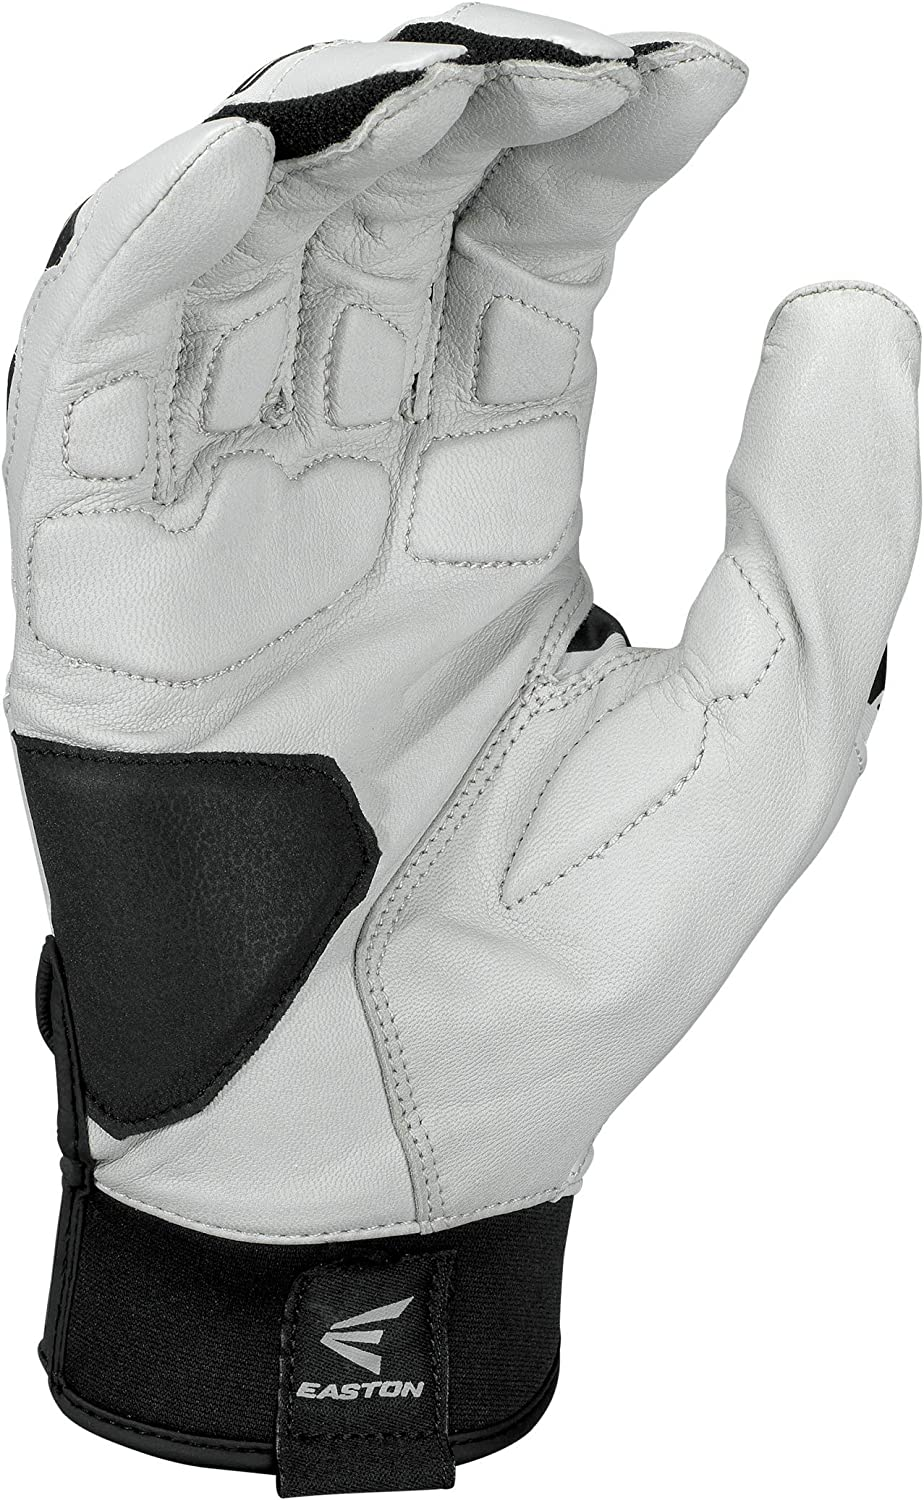 EASTON VRS POWER BOOST Batting Glove Series Pair Flexible Lycra And Silicon Molded Neoprene Strap Tacky Palm Baseball Softball 2021 Adult and Youth VRS Pad Reduces Vibration And Blisters